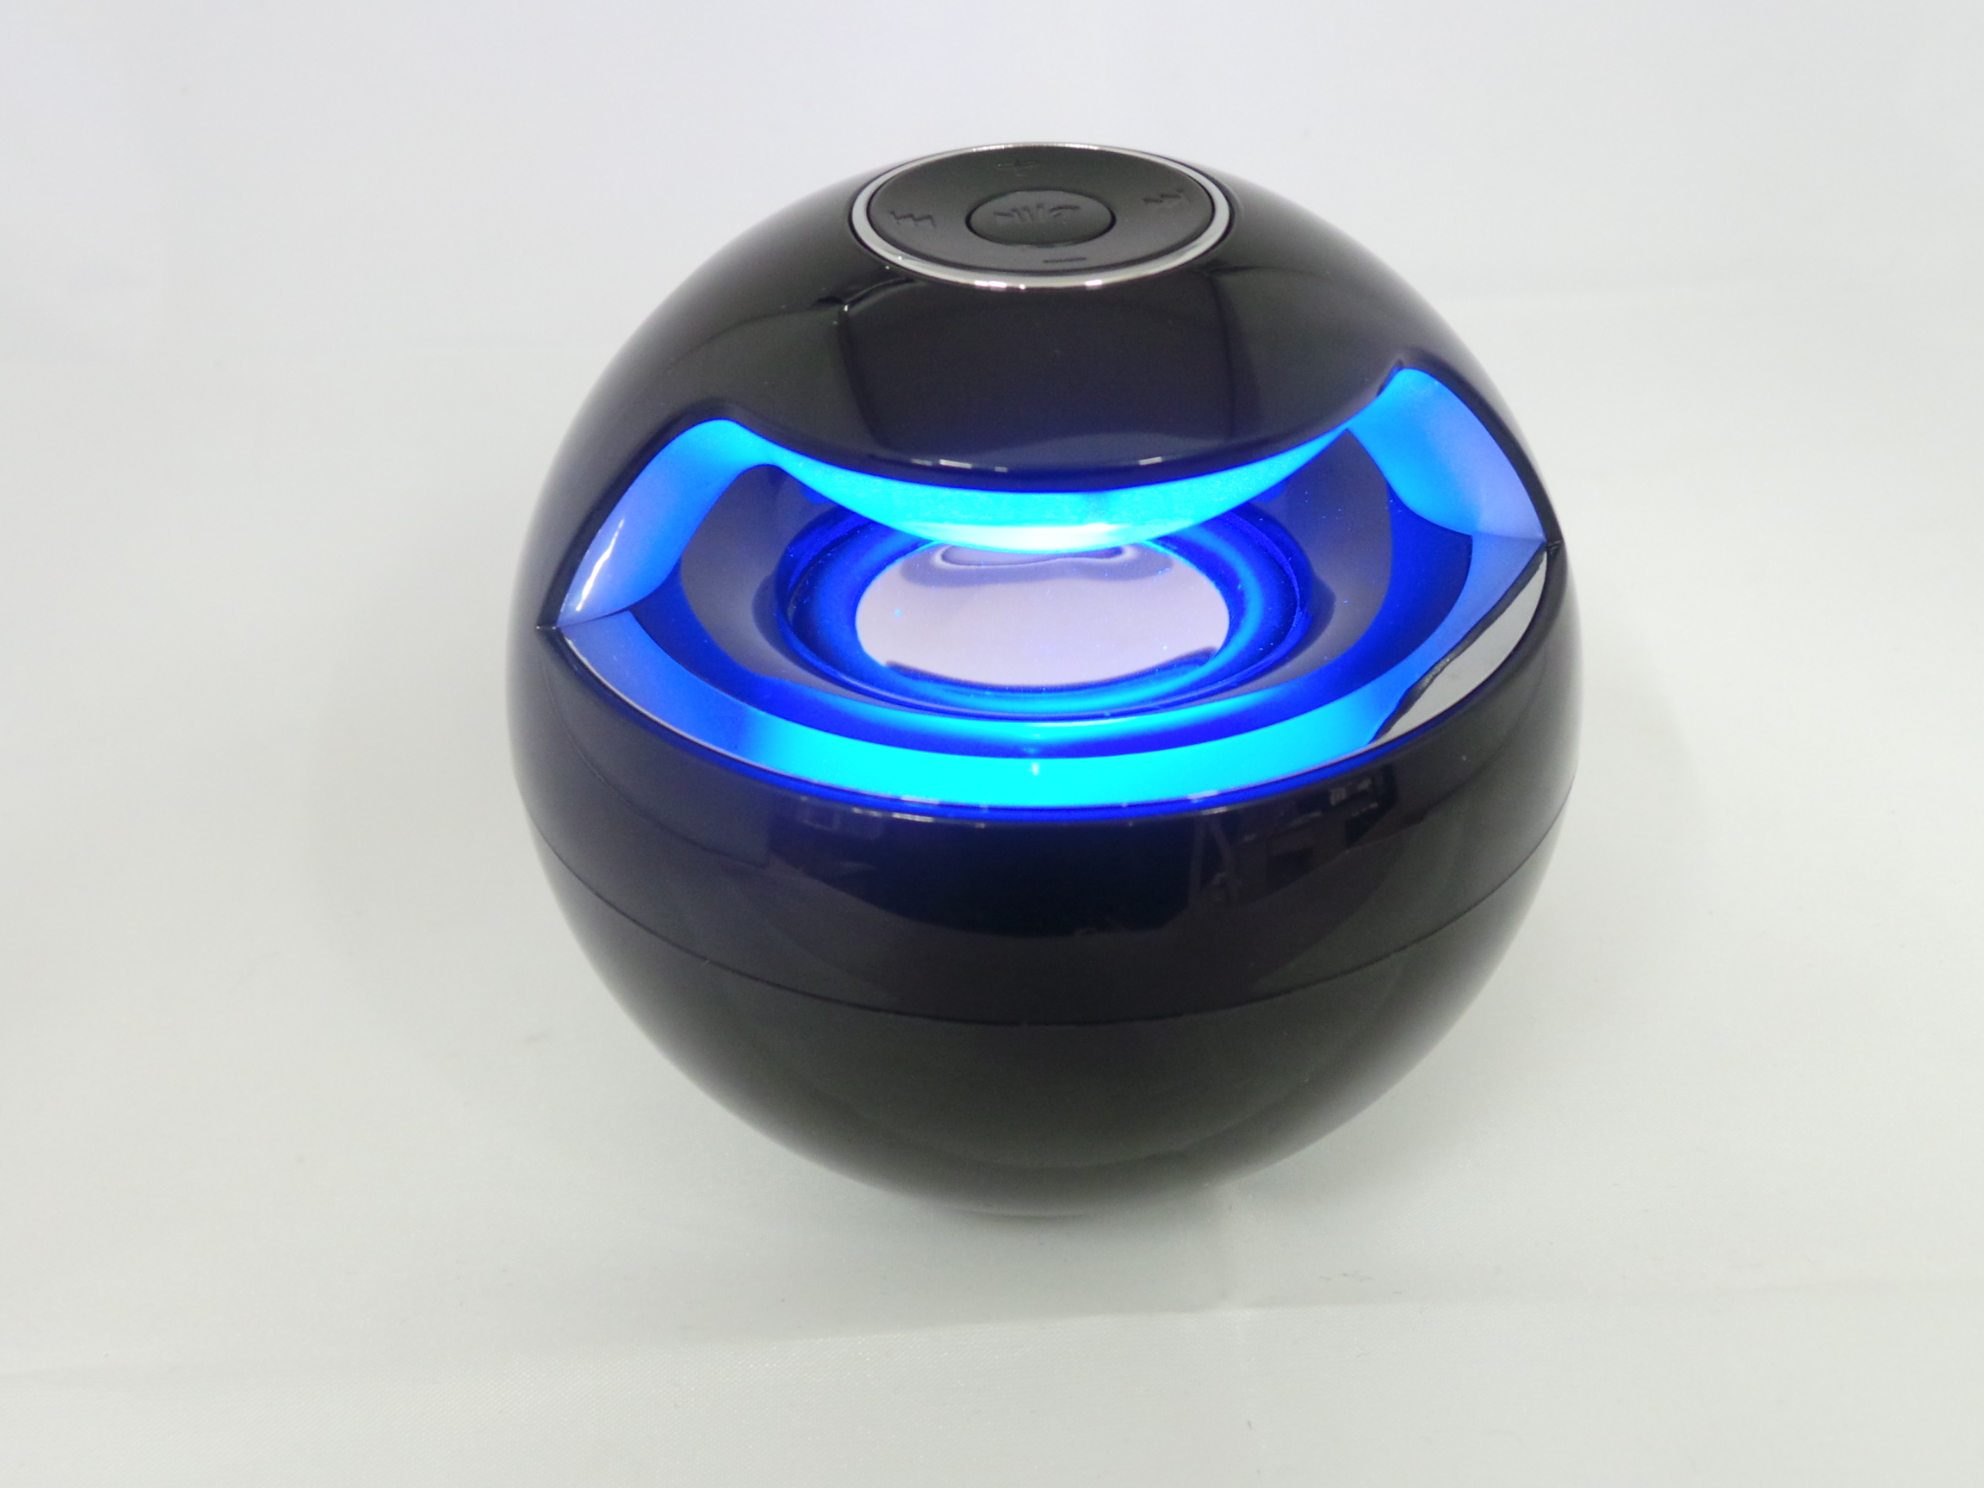 enceinte bluetooth lumineuse ronde universelle 3w rms pour tout appareil audio ebay. Black Bedroom Furniture Sets. Home Design Ideas